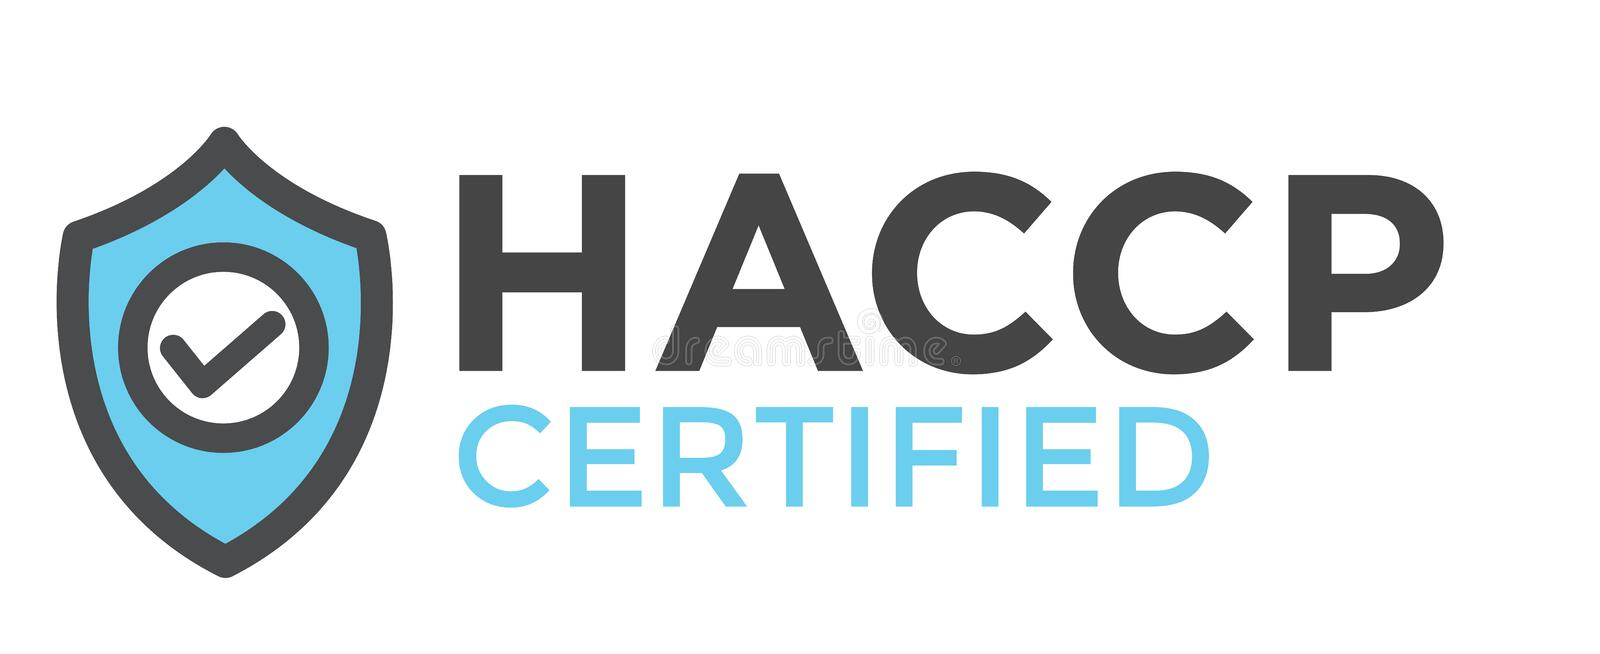 HACCP - Hazard Analysis Critical Control Points Icon With